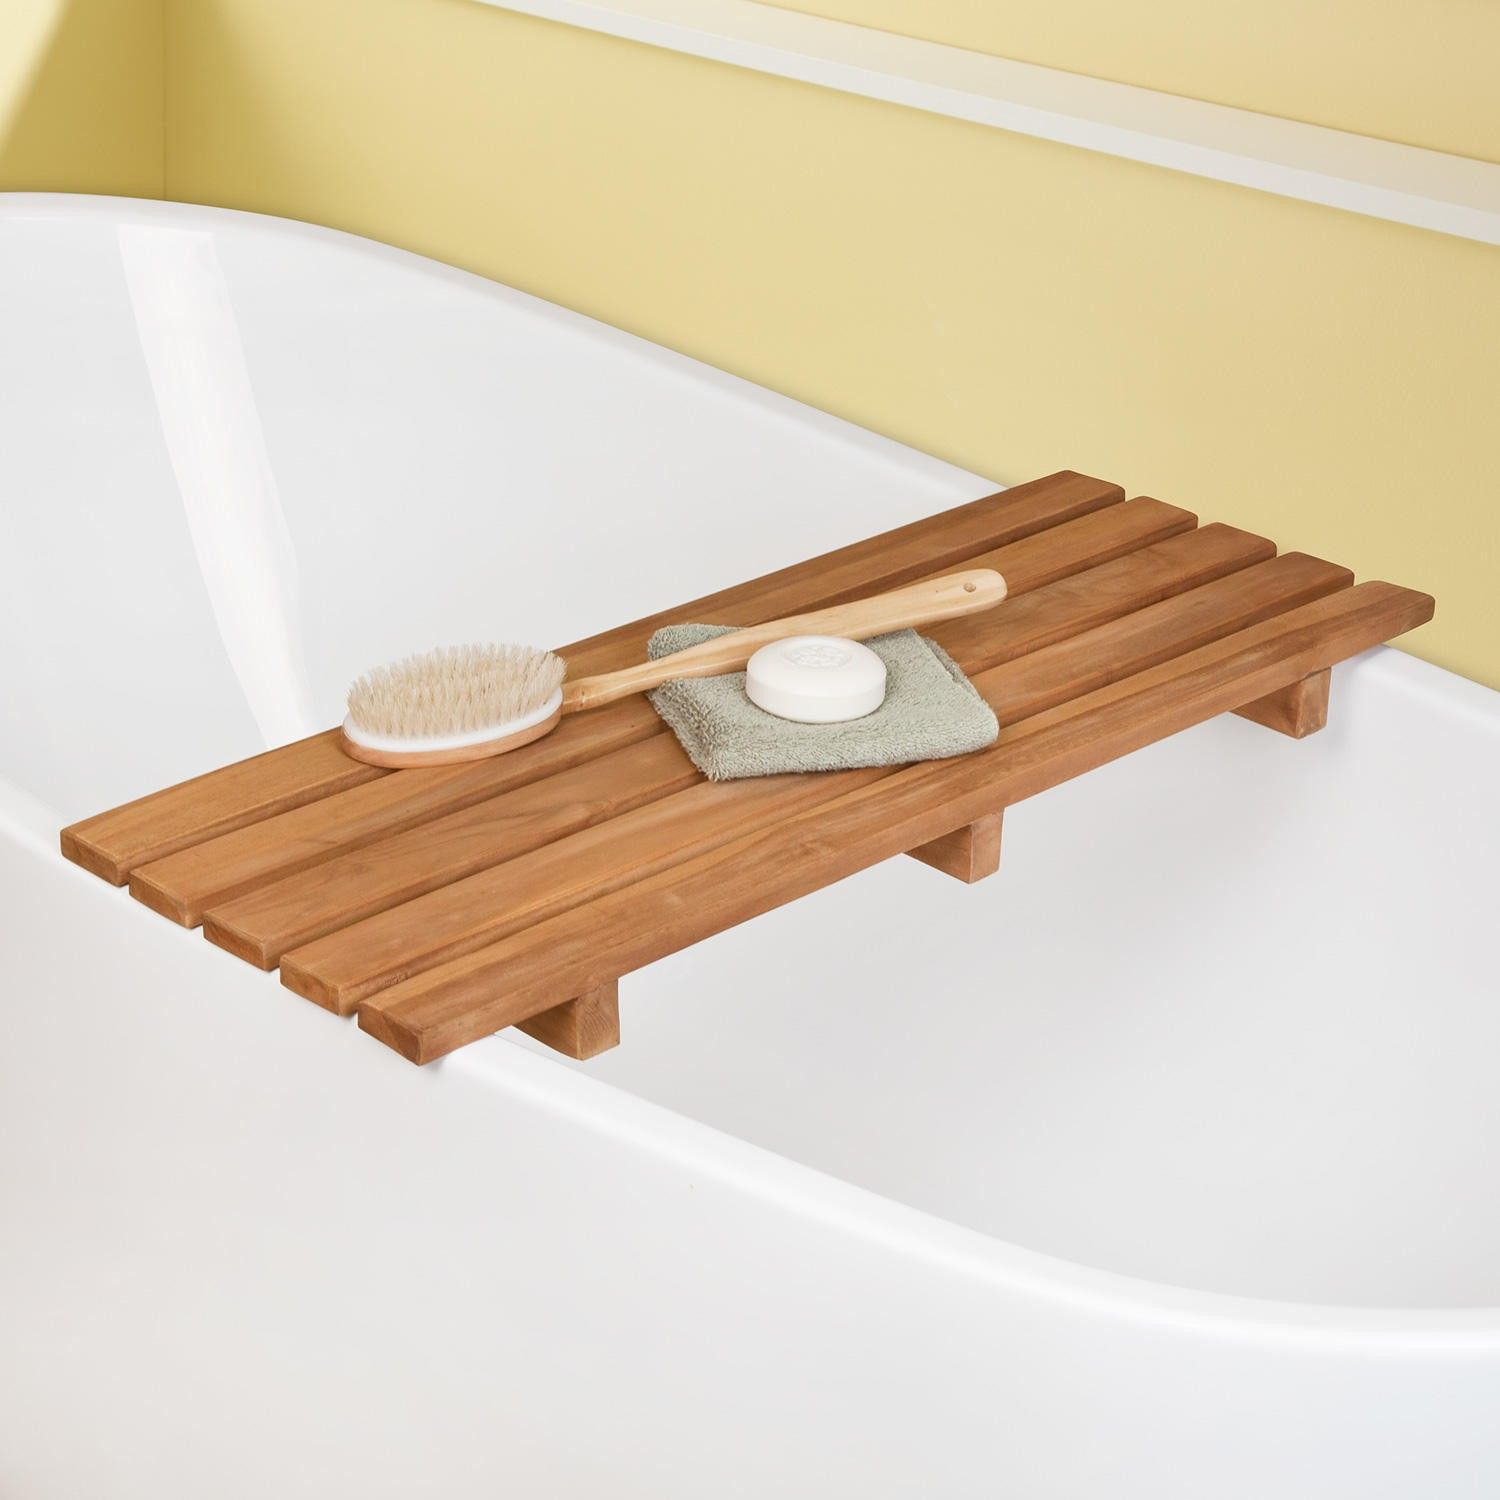 Adjustable Teak Bathtub Shelf-seat • Bathtub Ideas